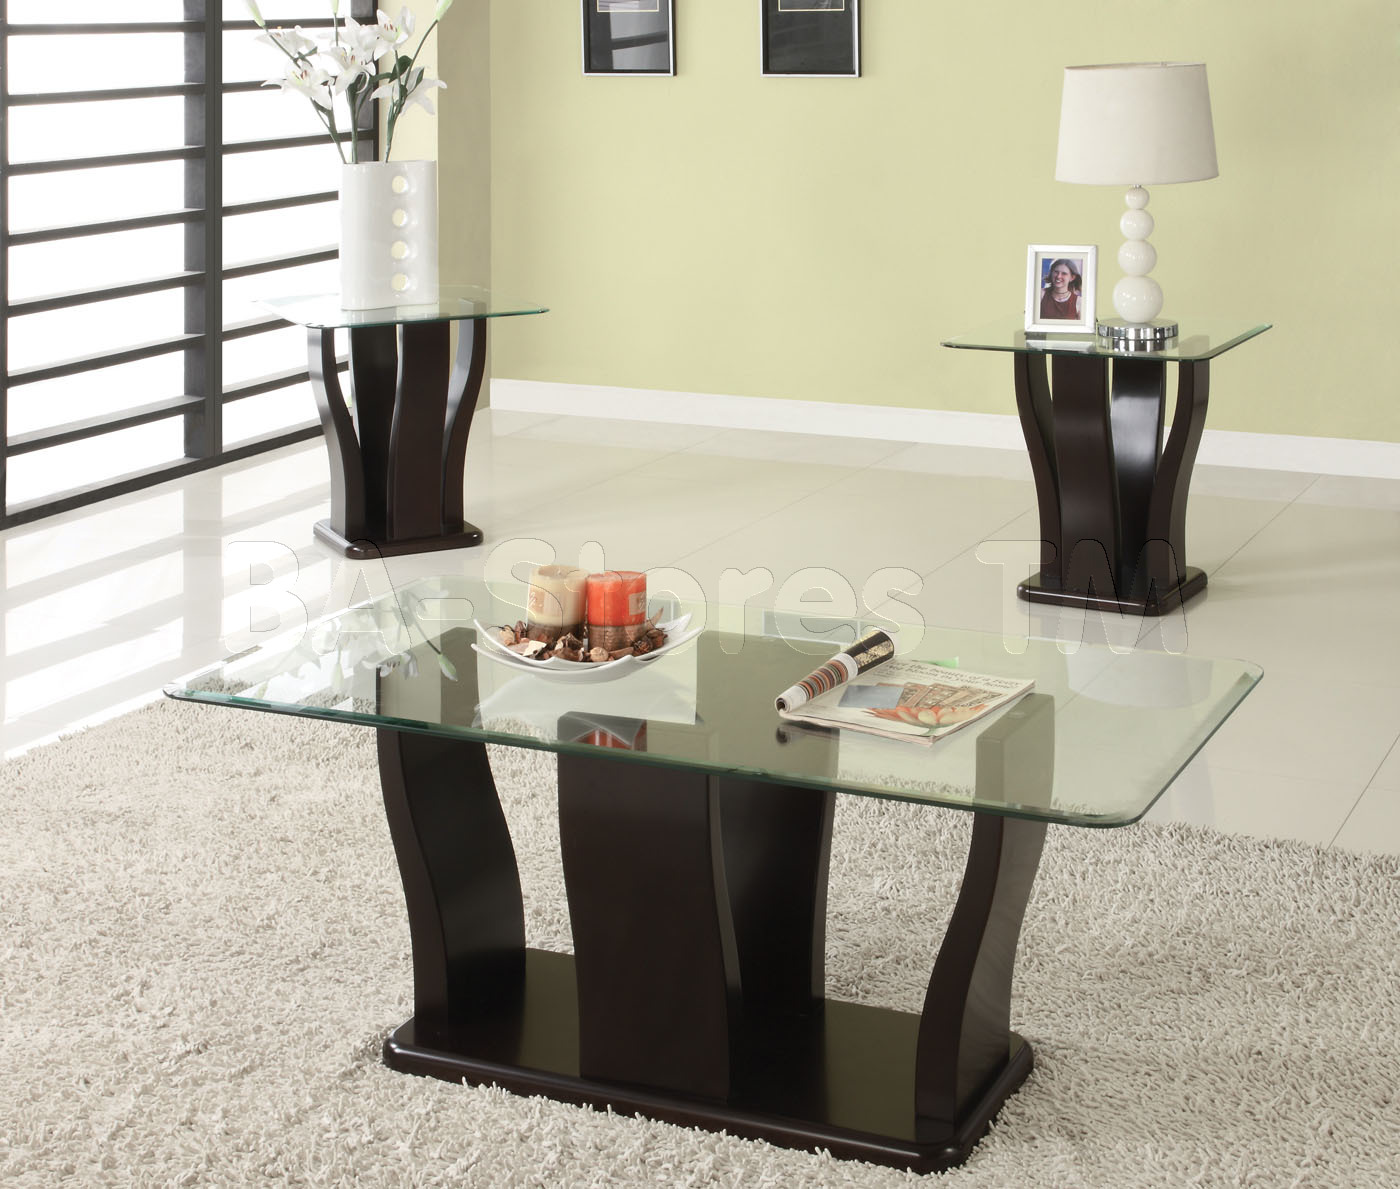 mirror drawing probably outrageous great modern coffee table and delightful black glass end tables outstanding graceful top mini interior home design ideas with sets clearance